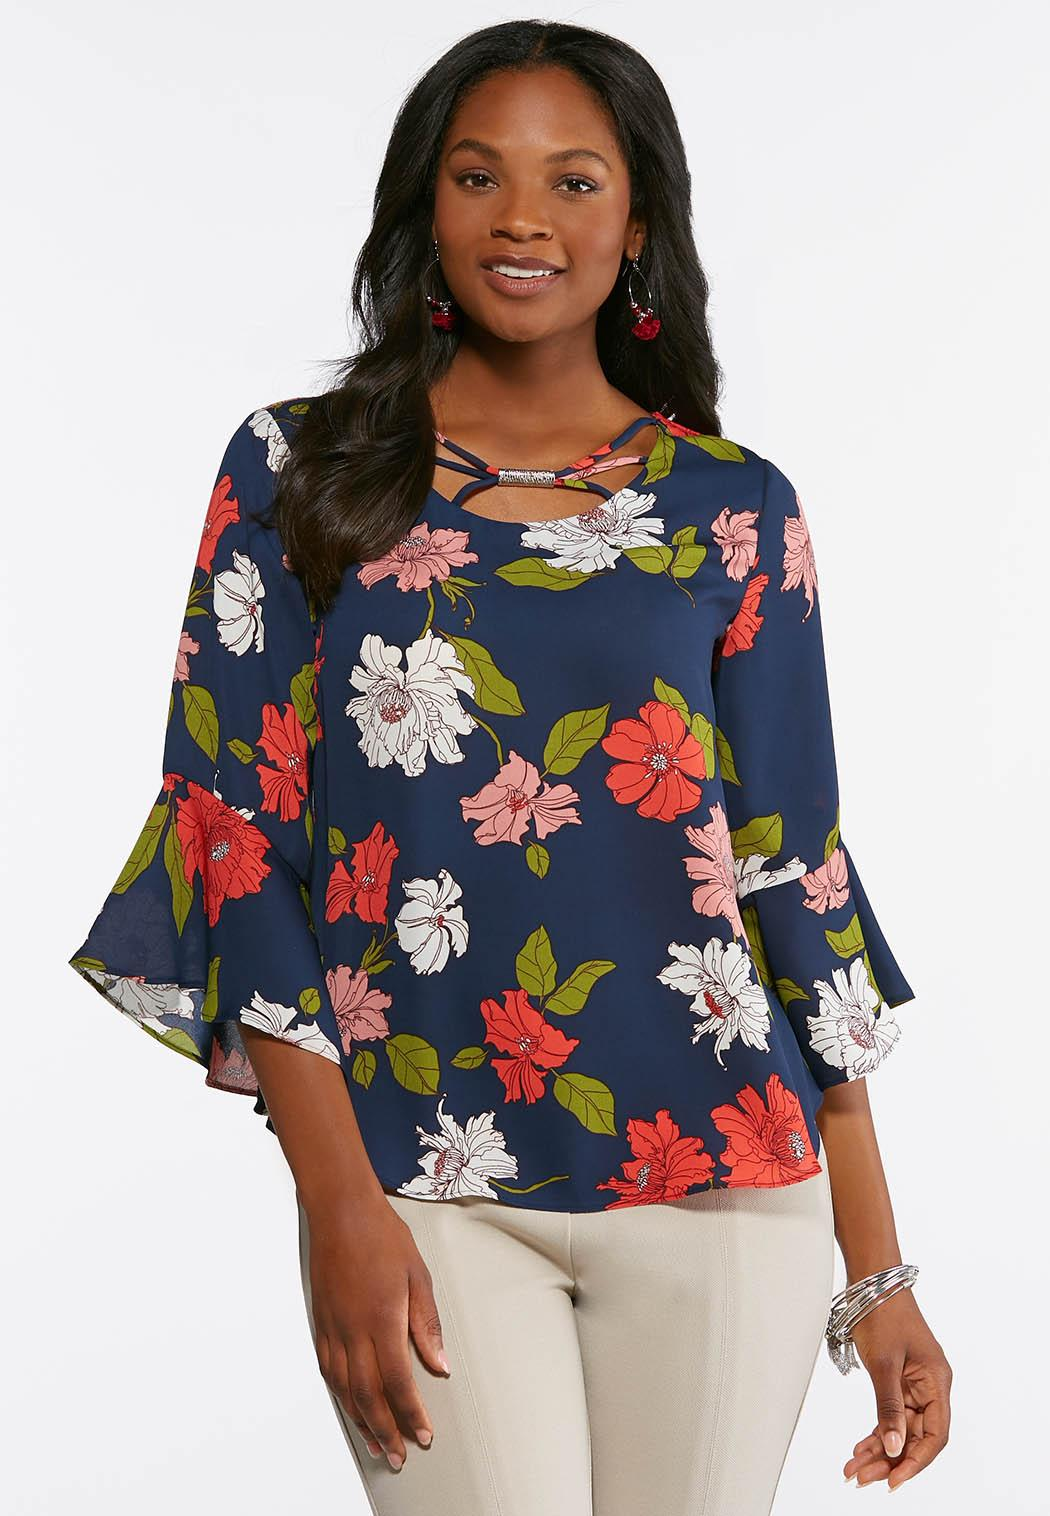 7031312a93e47 Plus Size Navy Floral Bell Sleeve Top Shirts   Blouses Cato Fashions